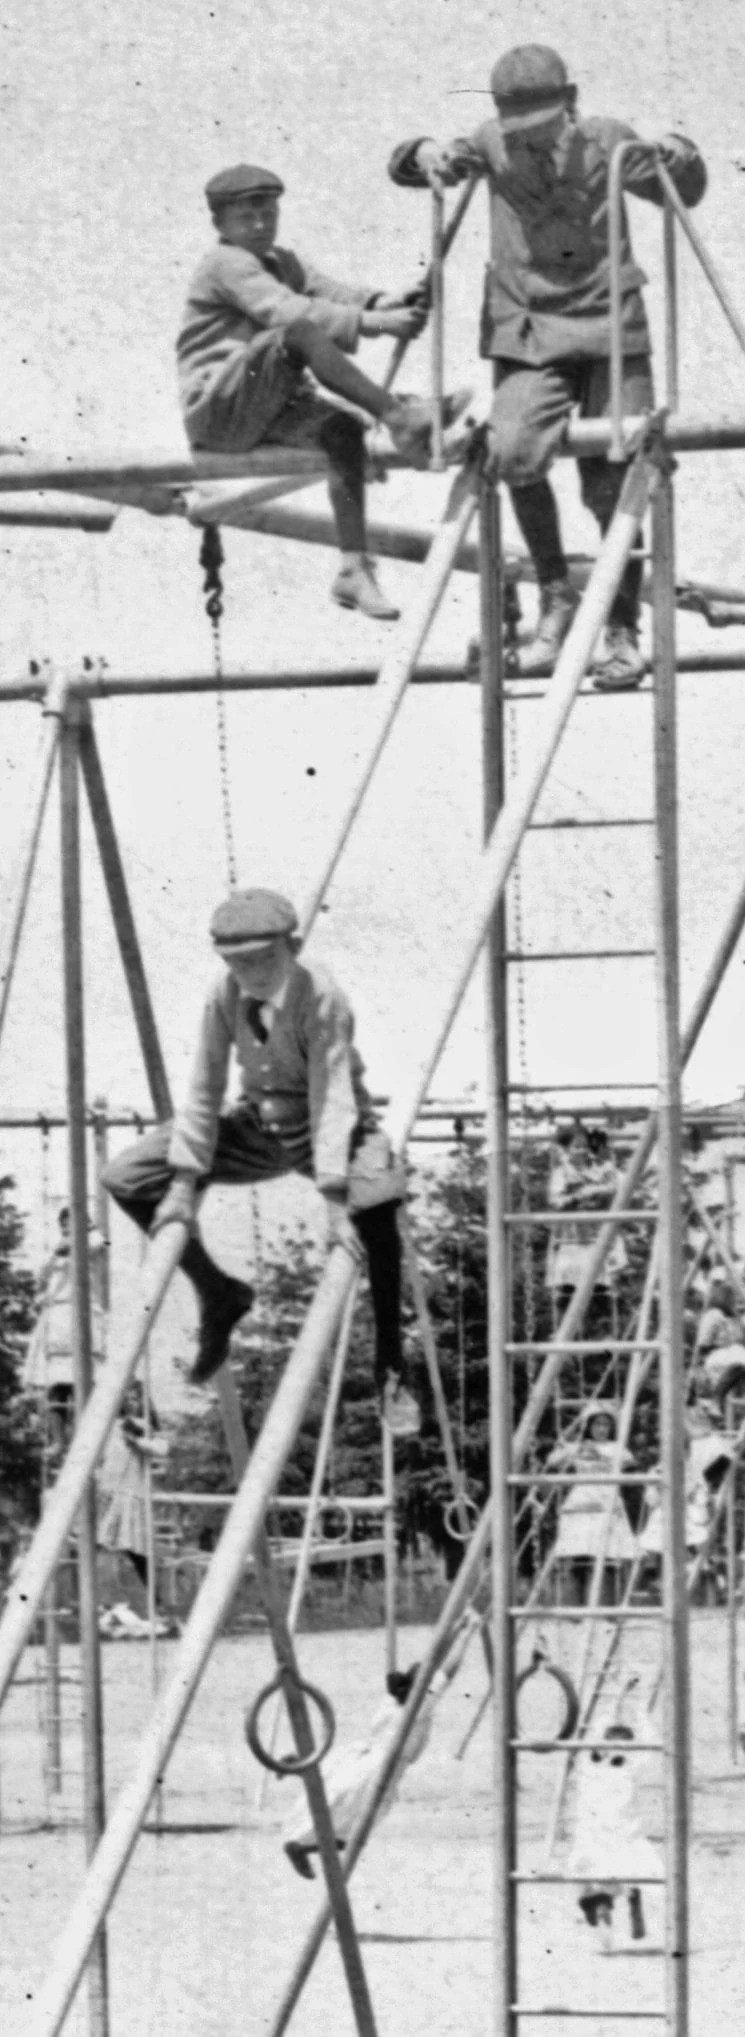 Crazy dangerous old playground from 1912